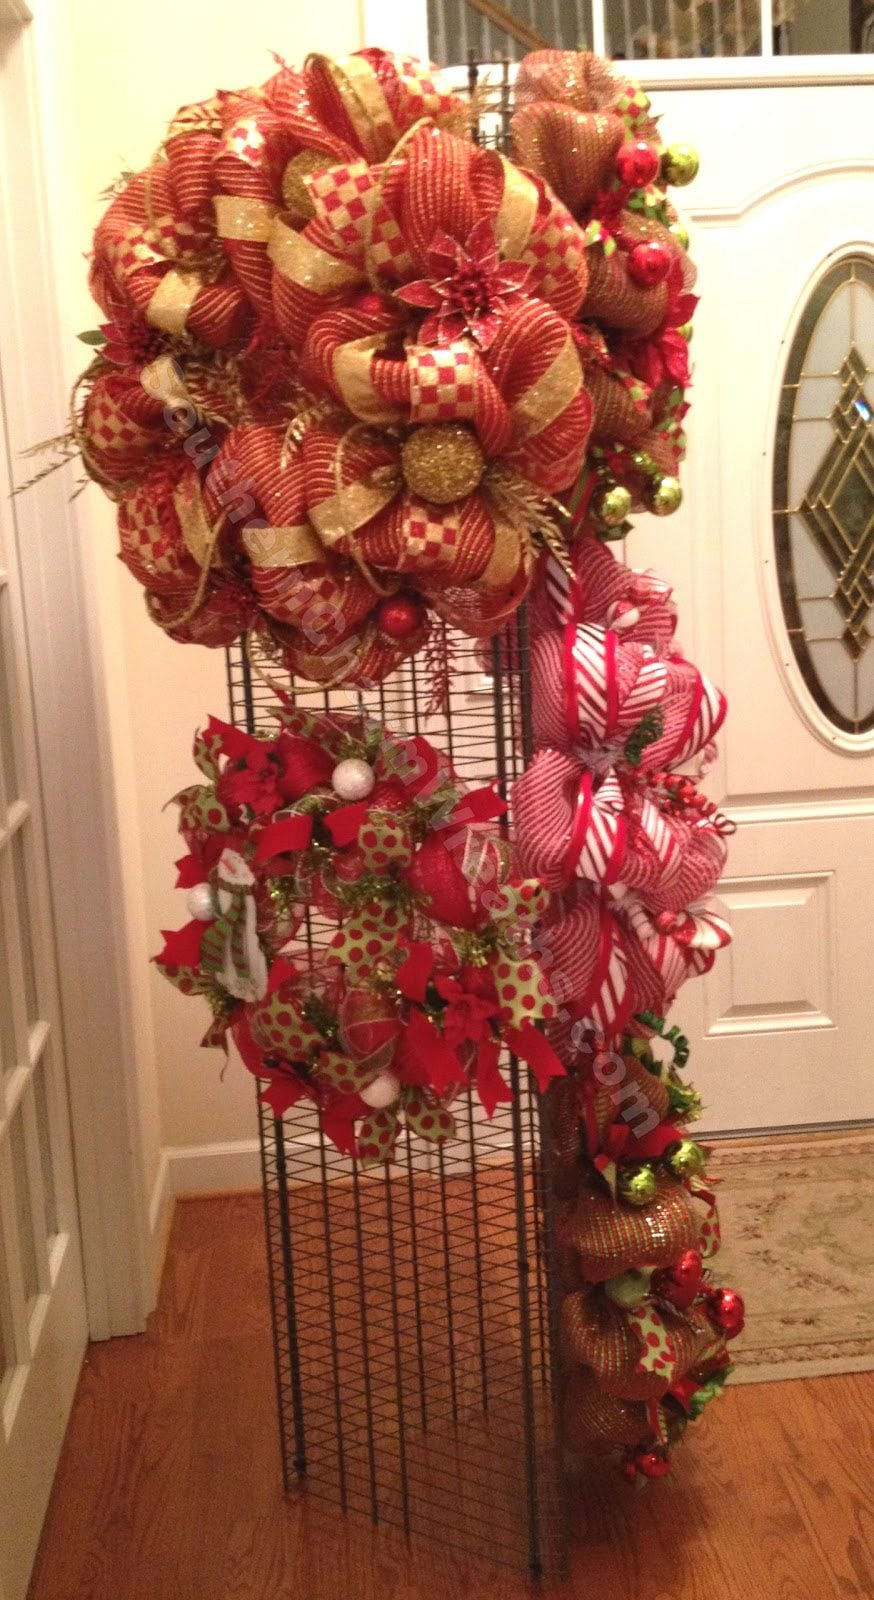 How to Make a Wreath Display for Craft Fair or Storage